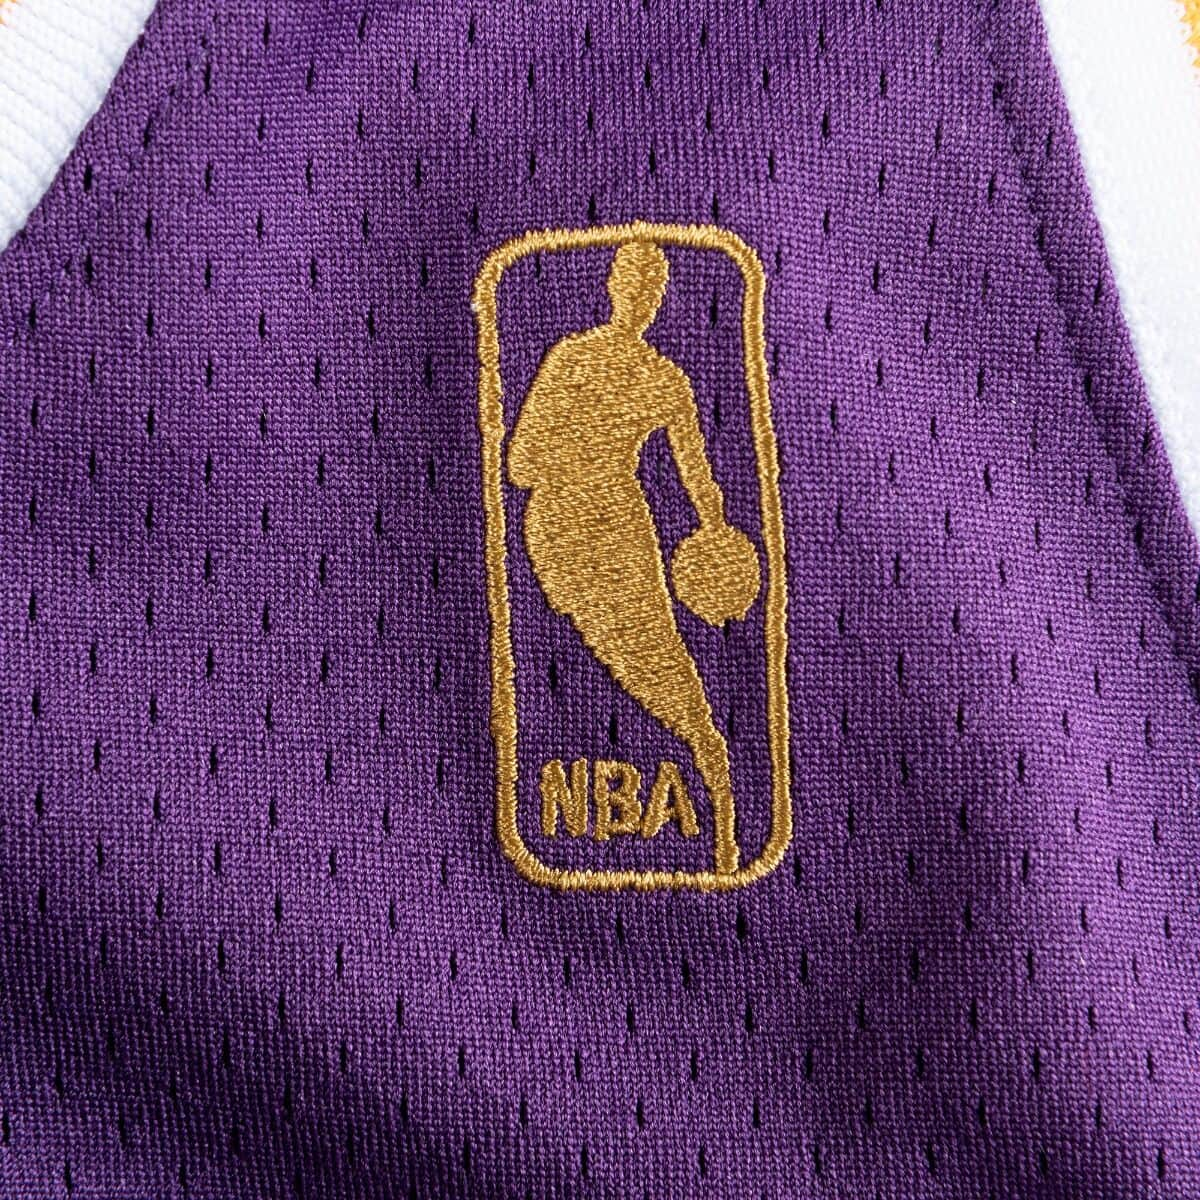 MITCHELL & NESS M'S TANKTOPS AUTHENTIC JERSEY LOS ANGELES LAKERS ROAD 1996-97 KOBE BRYANT